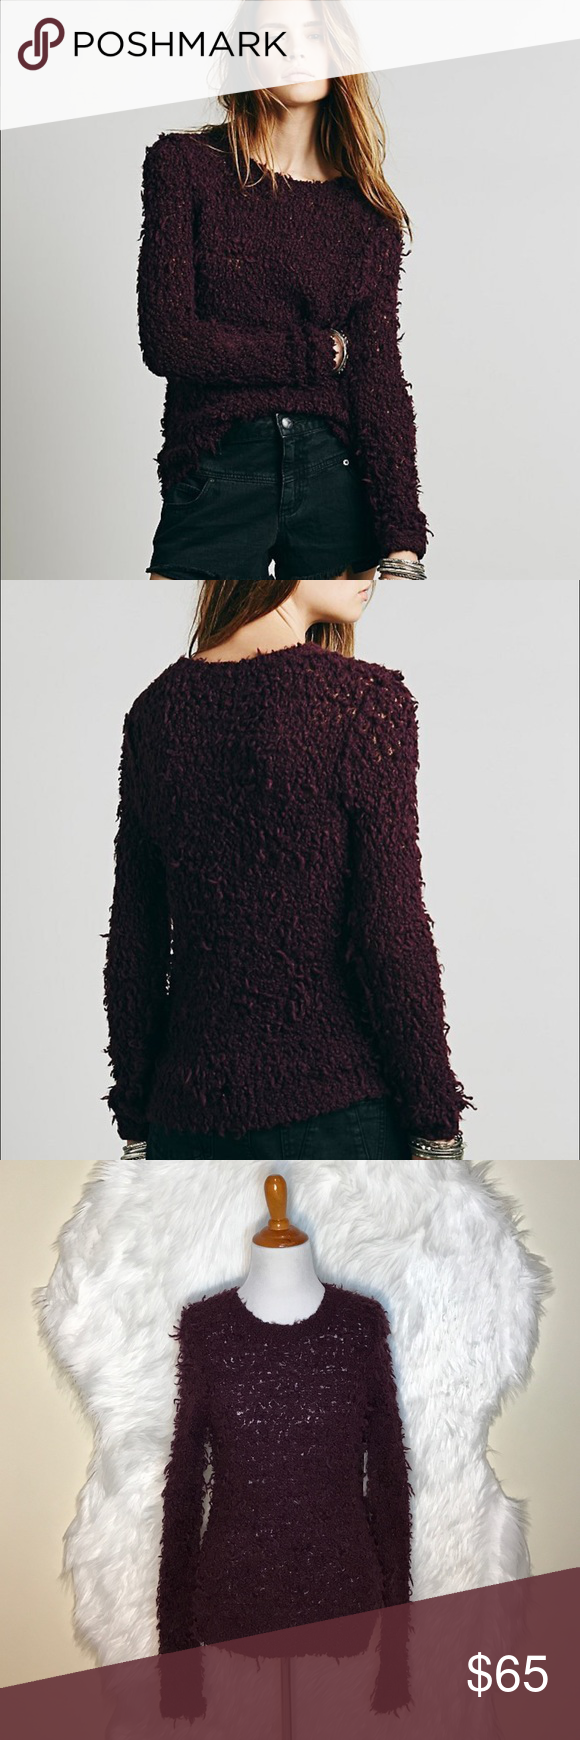 """Free People Polar Bear Shaggy Pullover Sweater L107-Super cozy From Free People Eggplant Shaggy Pullover Sweater, shaggy knit, soft wool blend. 51% acrylic, 25% wool, 24% nylon. Laid flat across @ bust: 16.5"""", Length: 26"""". NWT Free People Sweaters Crew & Scoop Necks"""